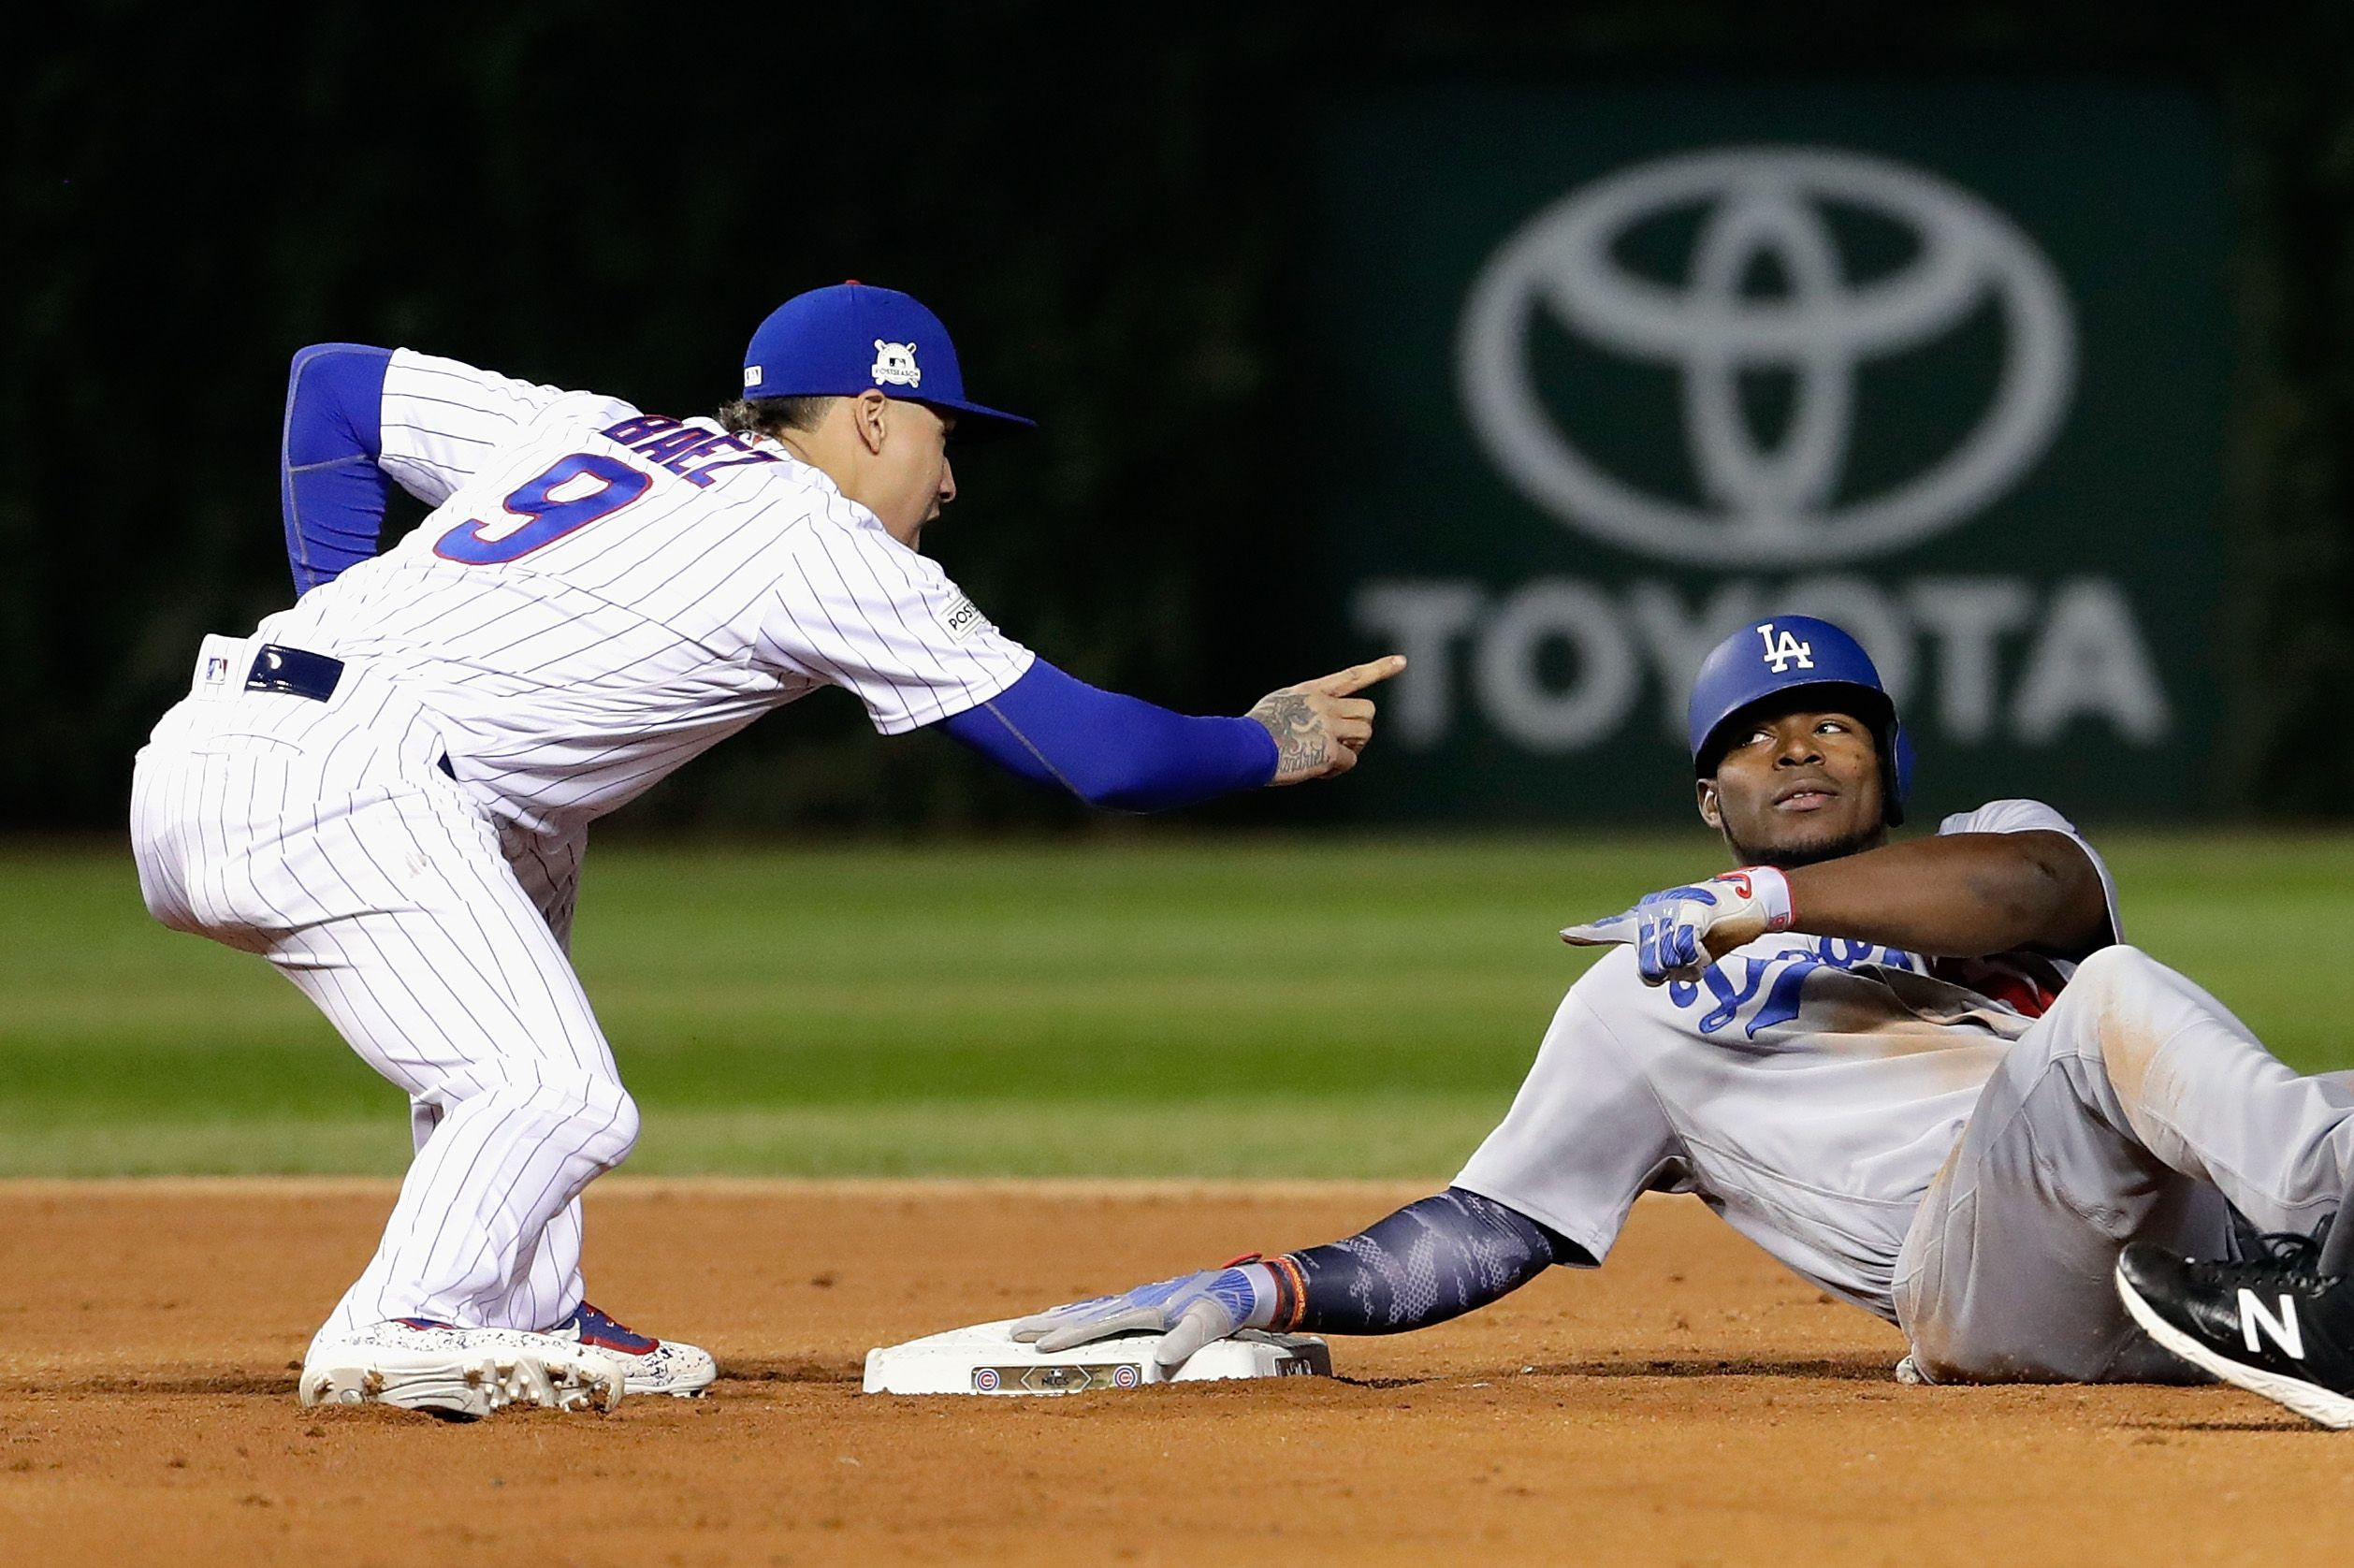 Javy Baez Gives Yasiel Puig A Dikembe Mutombo Finger Wag After Tag Mlb Chicago Cubs Chicago Cubs Baseball Cubs Baseball